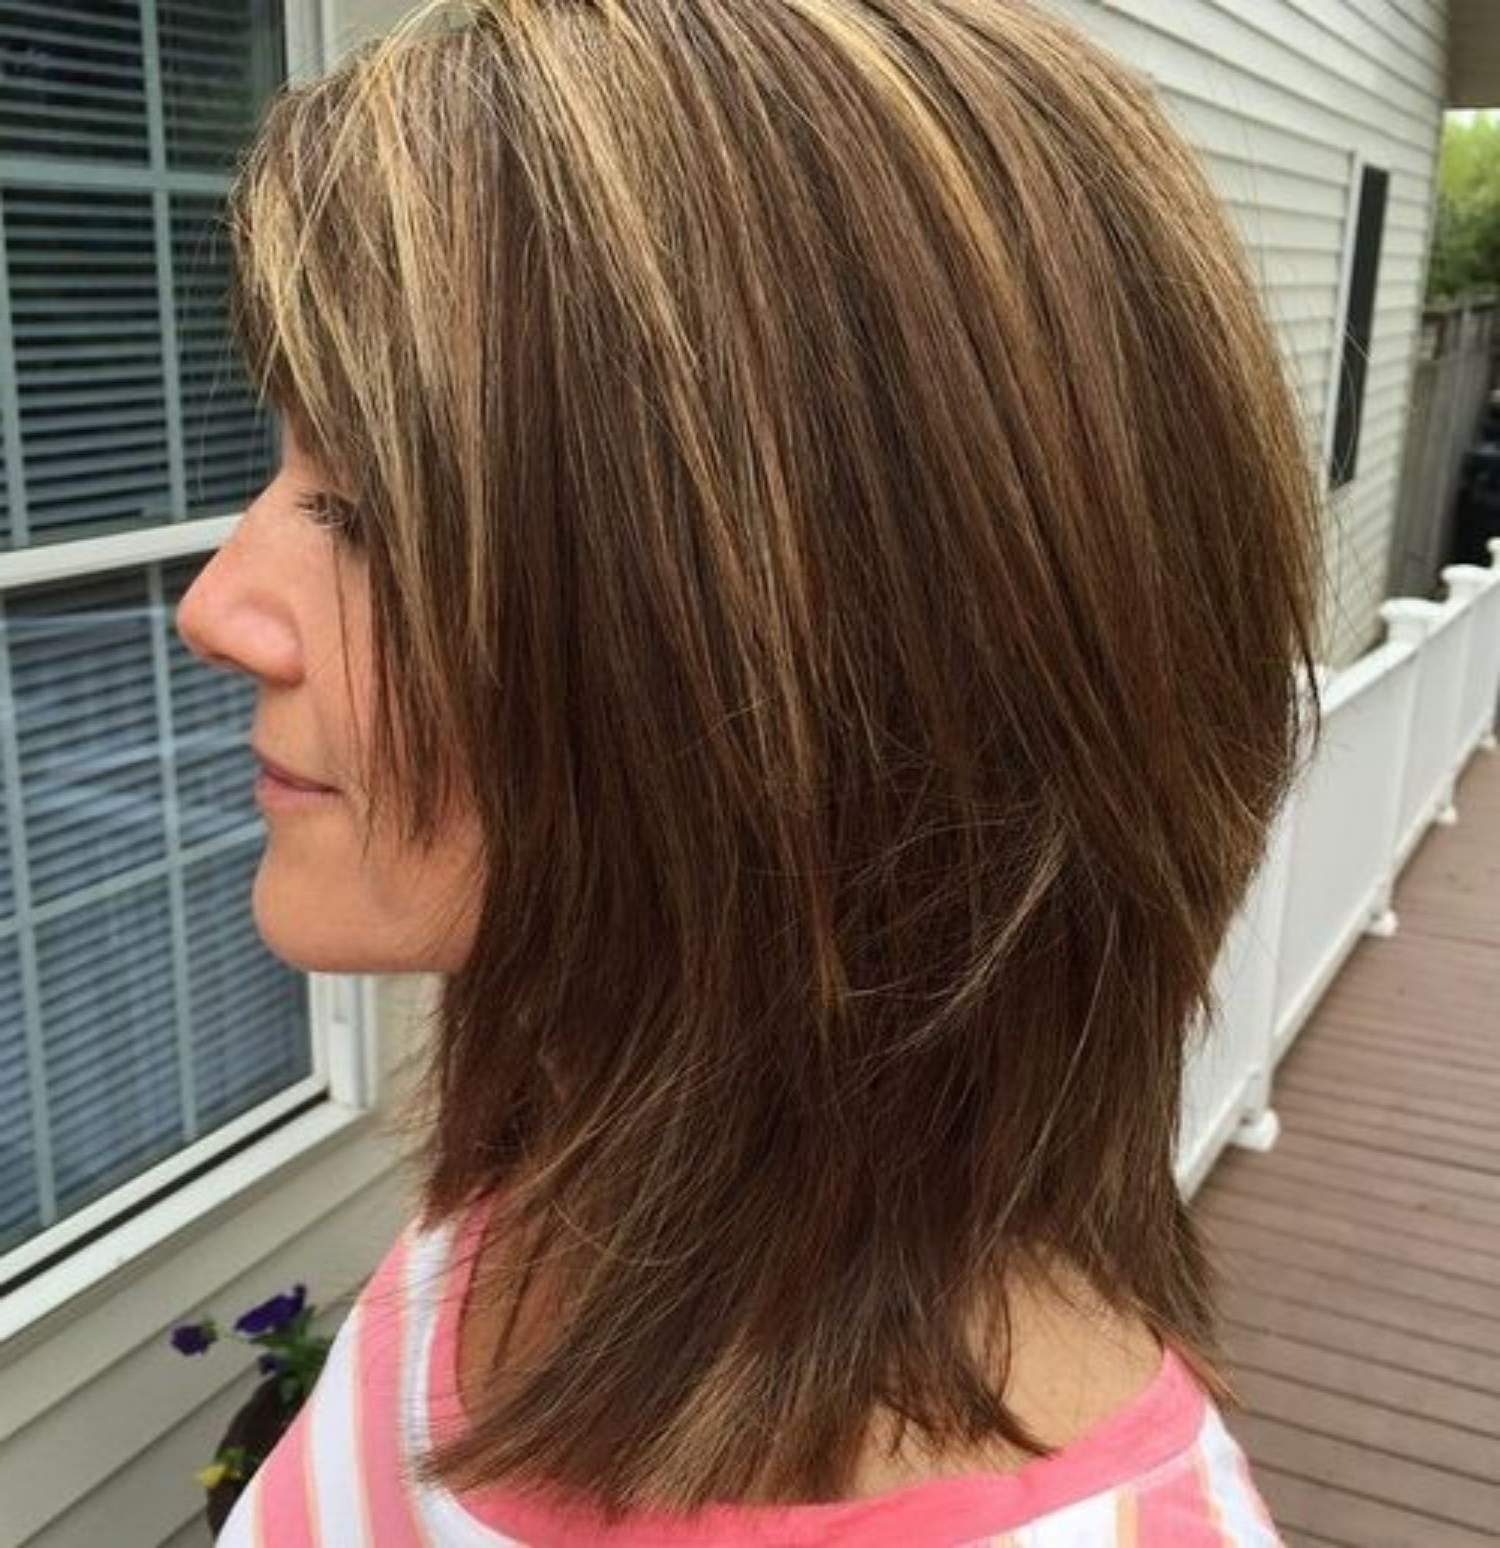 Fashionable Chopped Medium Haircuts For Straight Hair Throughout Pin On Hair And Fashion (View 4 of 20)